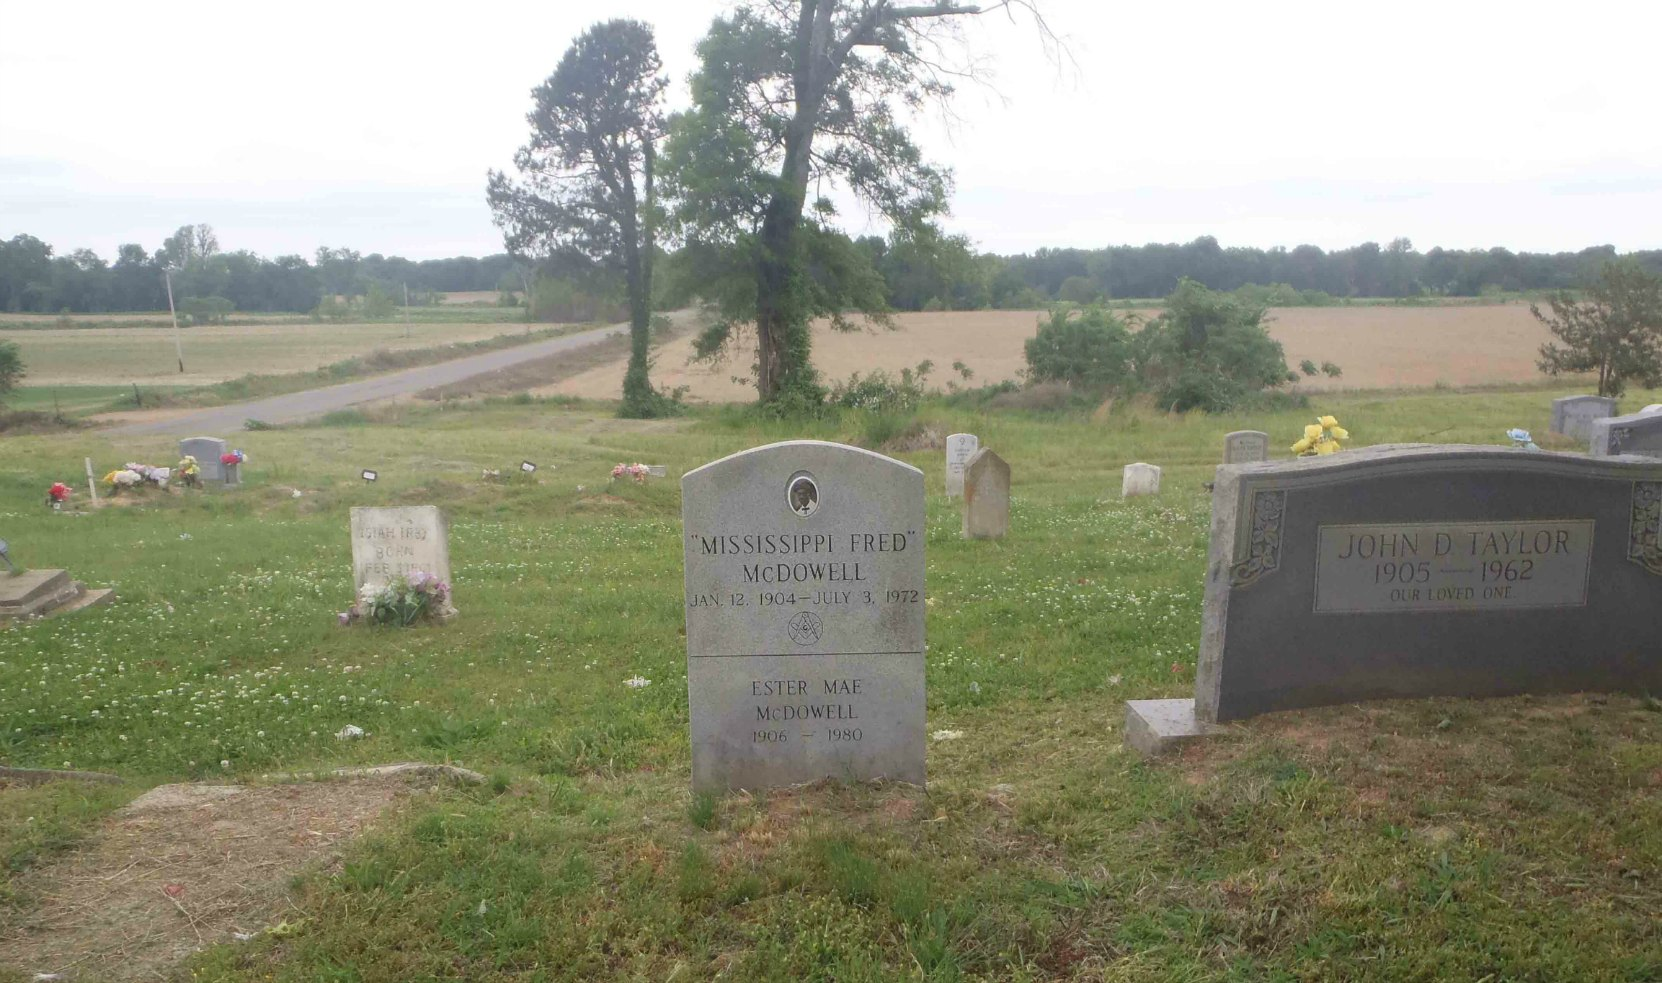 Mississippi Fred McDowell's grave, near Como, Panola County, Mississippi